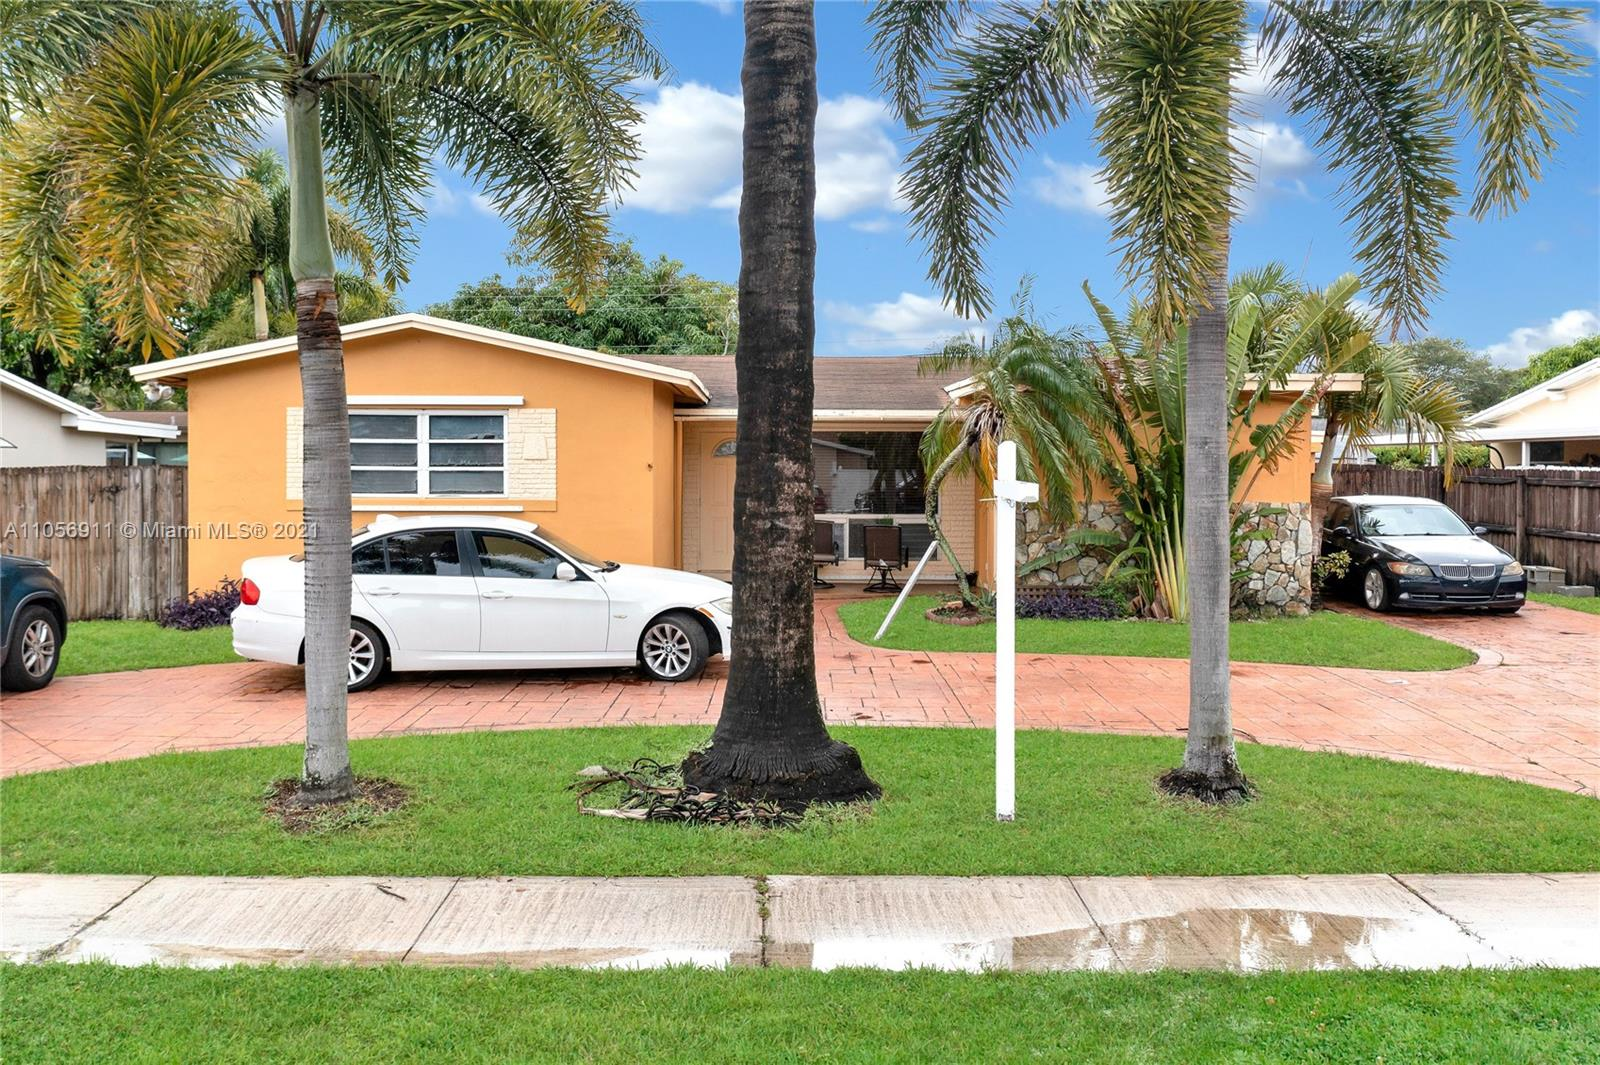 Boulevard Heights - 610 SW 69th Ave, Pembroke Pines, FL 33023